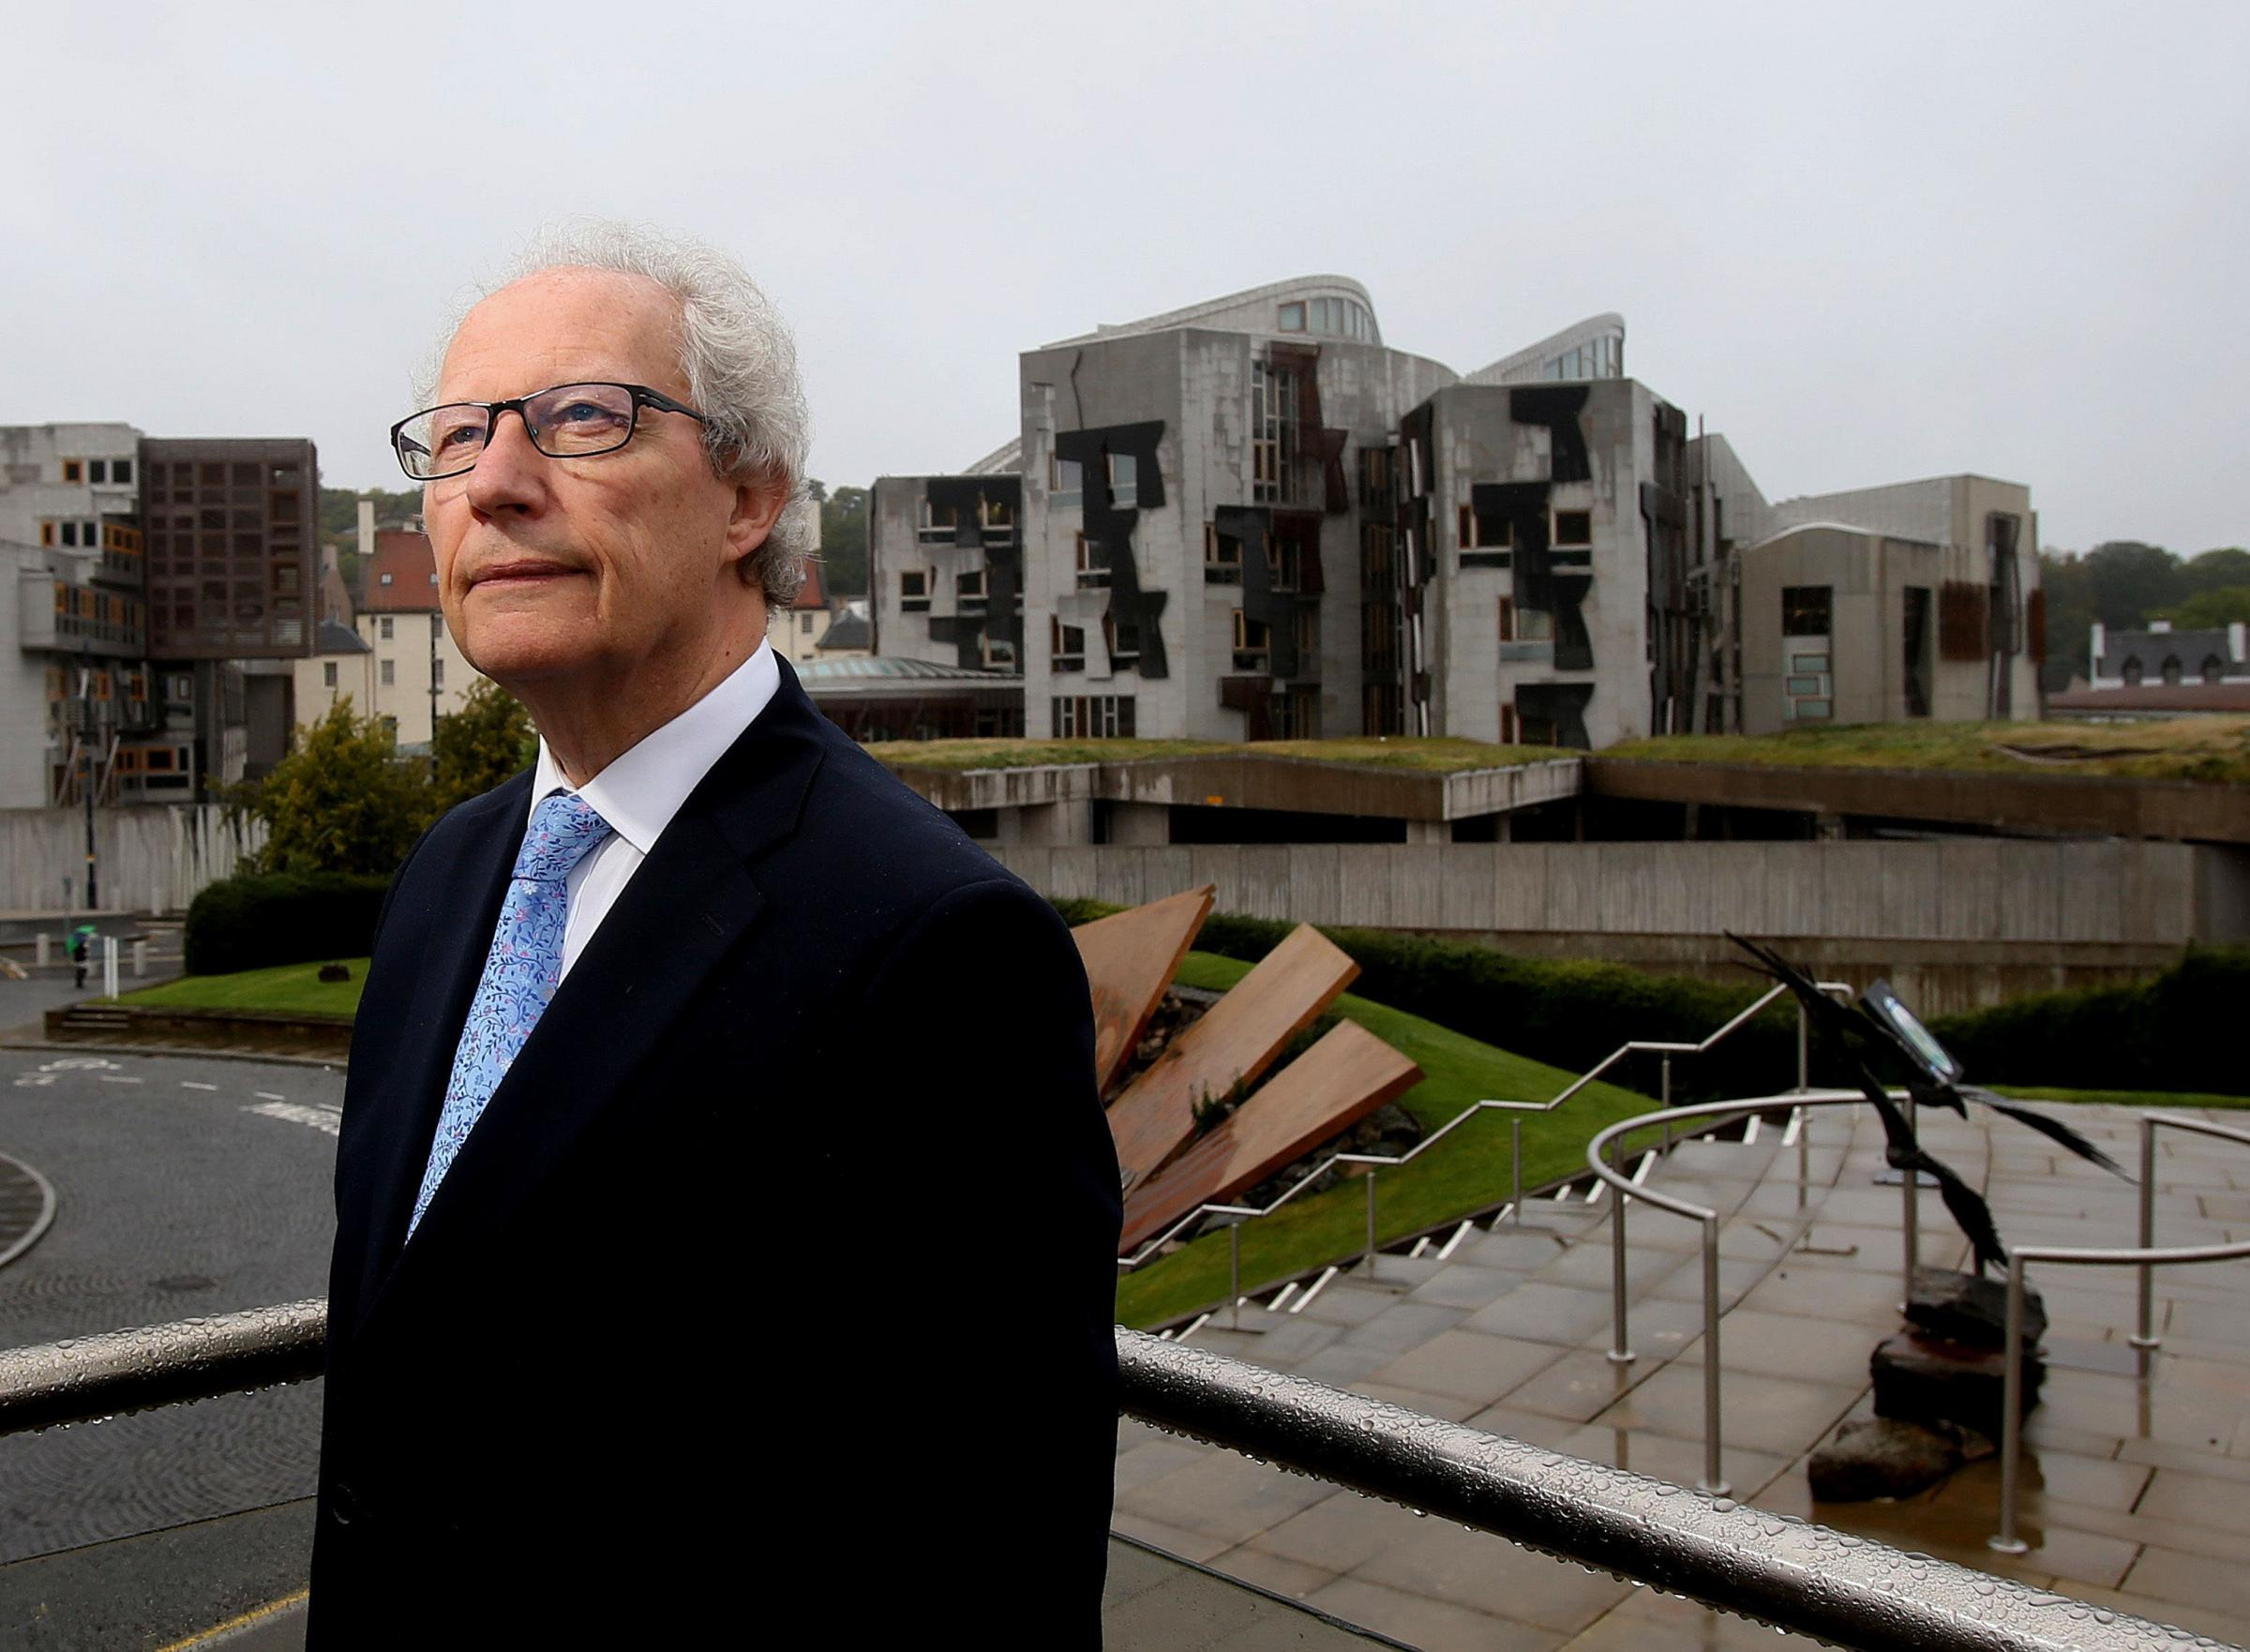 Former first minister Henry McLeish poke on the anniversary of the reconvening of the Scottish Parliament. Photograph: Gordon Terris